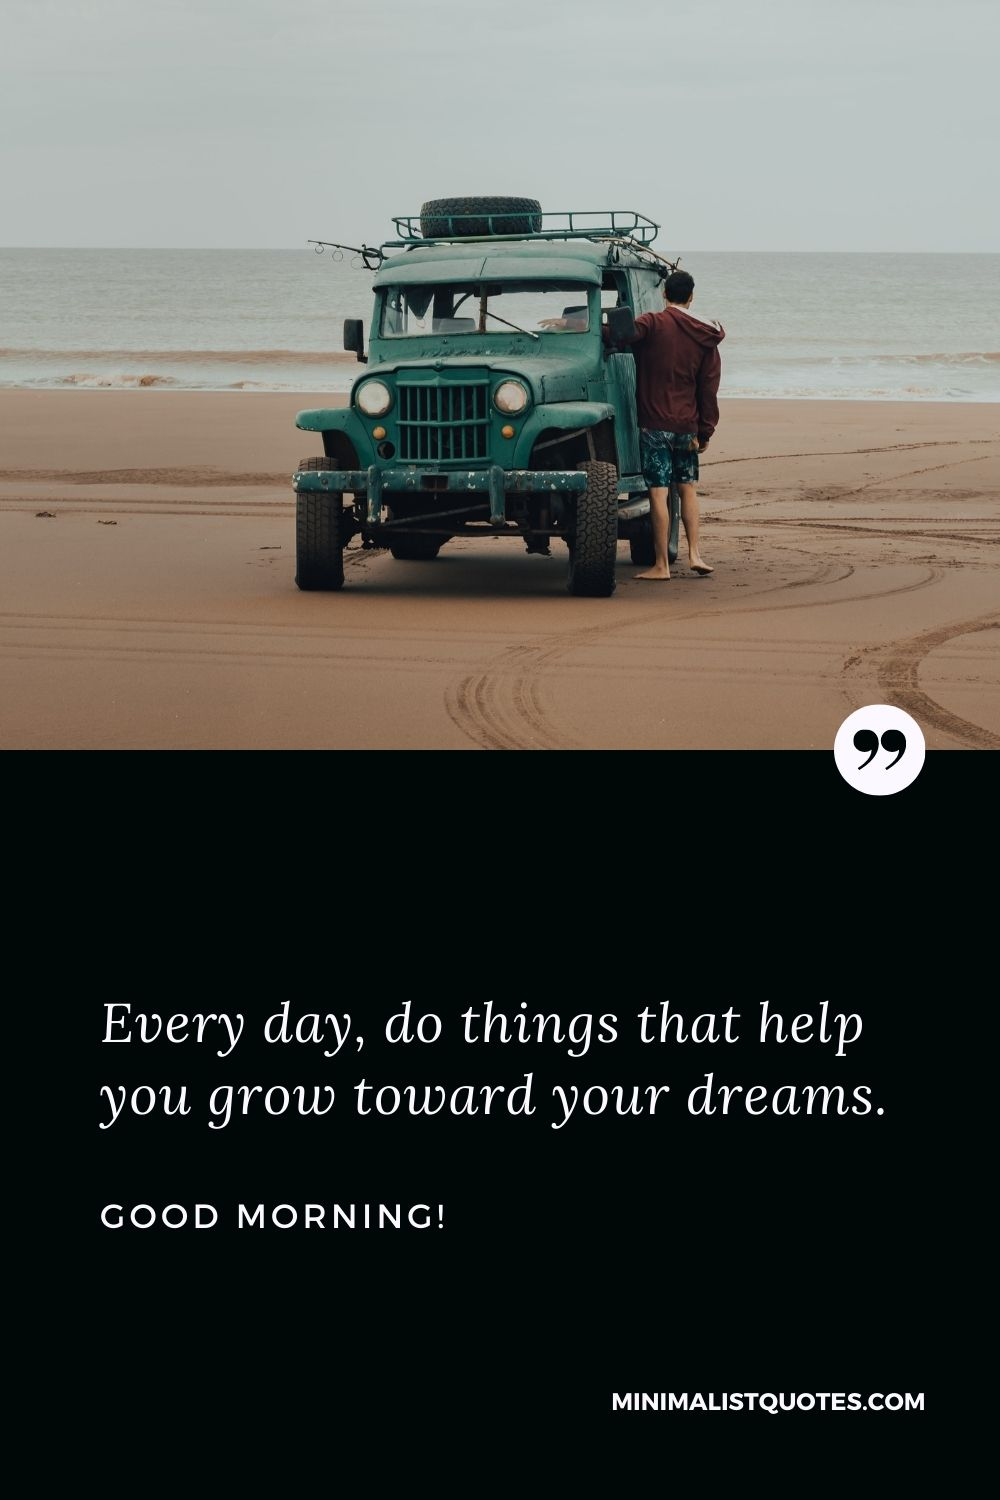 Good Morning Wish & Message With HD Image: Every day, do things that help you grow toward your dreams. Good Morning!